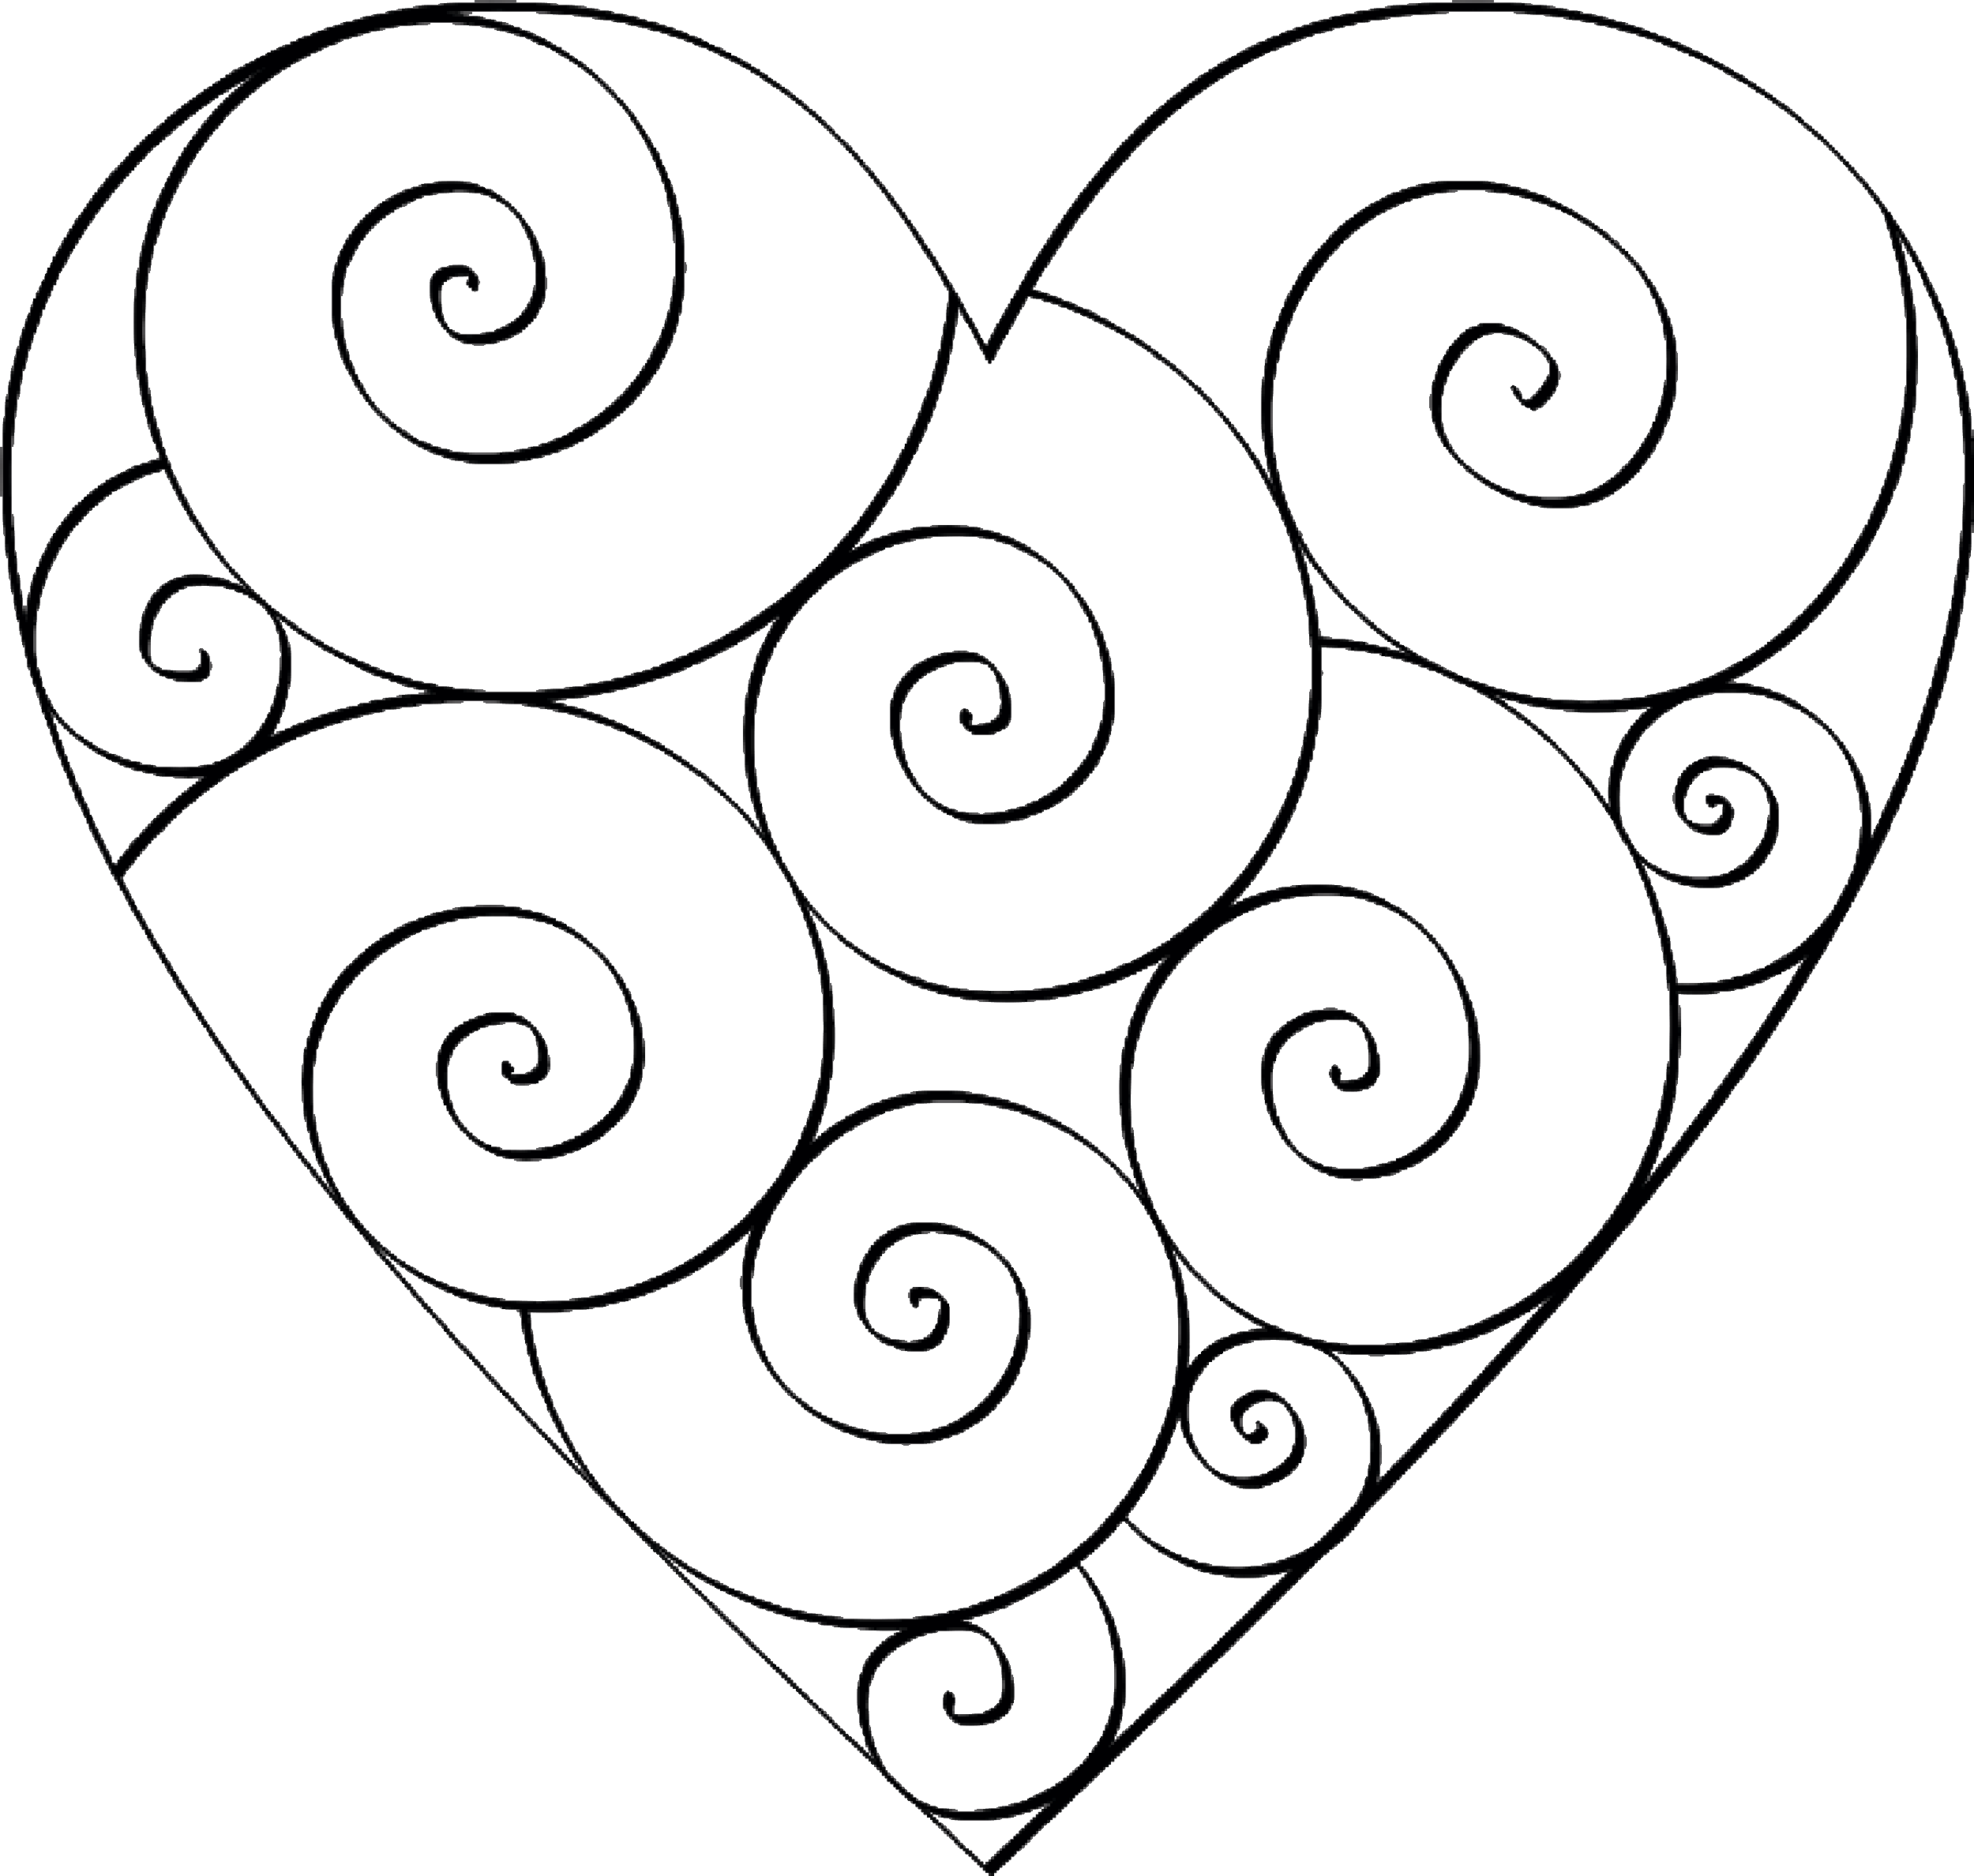 printable heart pictures free printable heart templates diy 100 ideas heart printable pictures